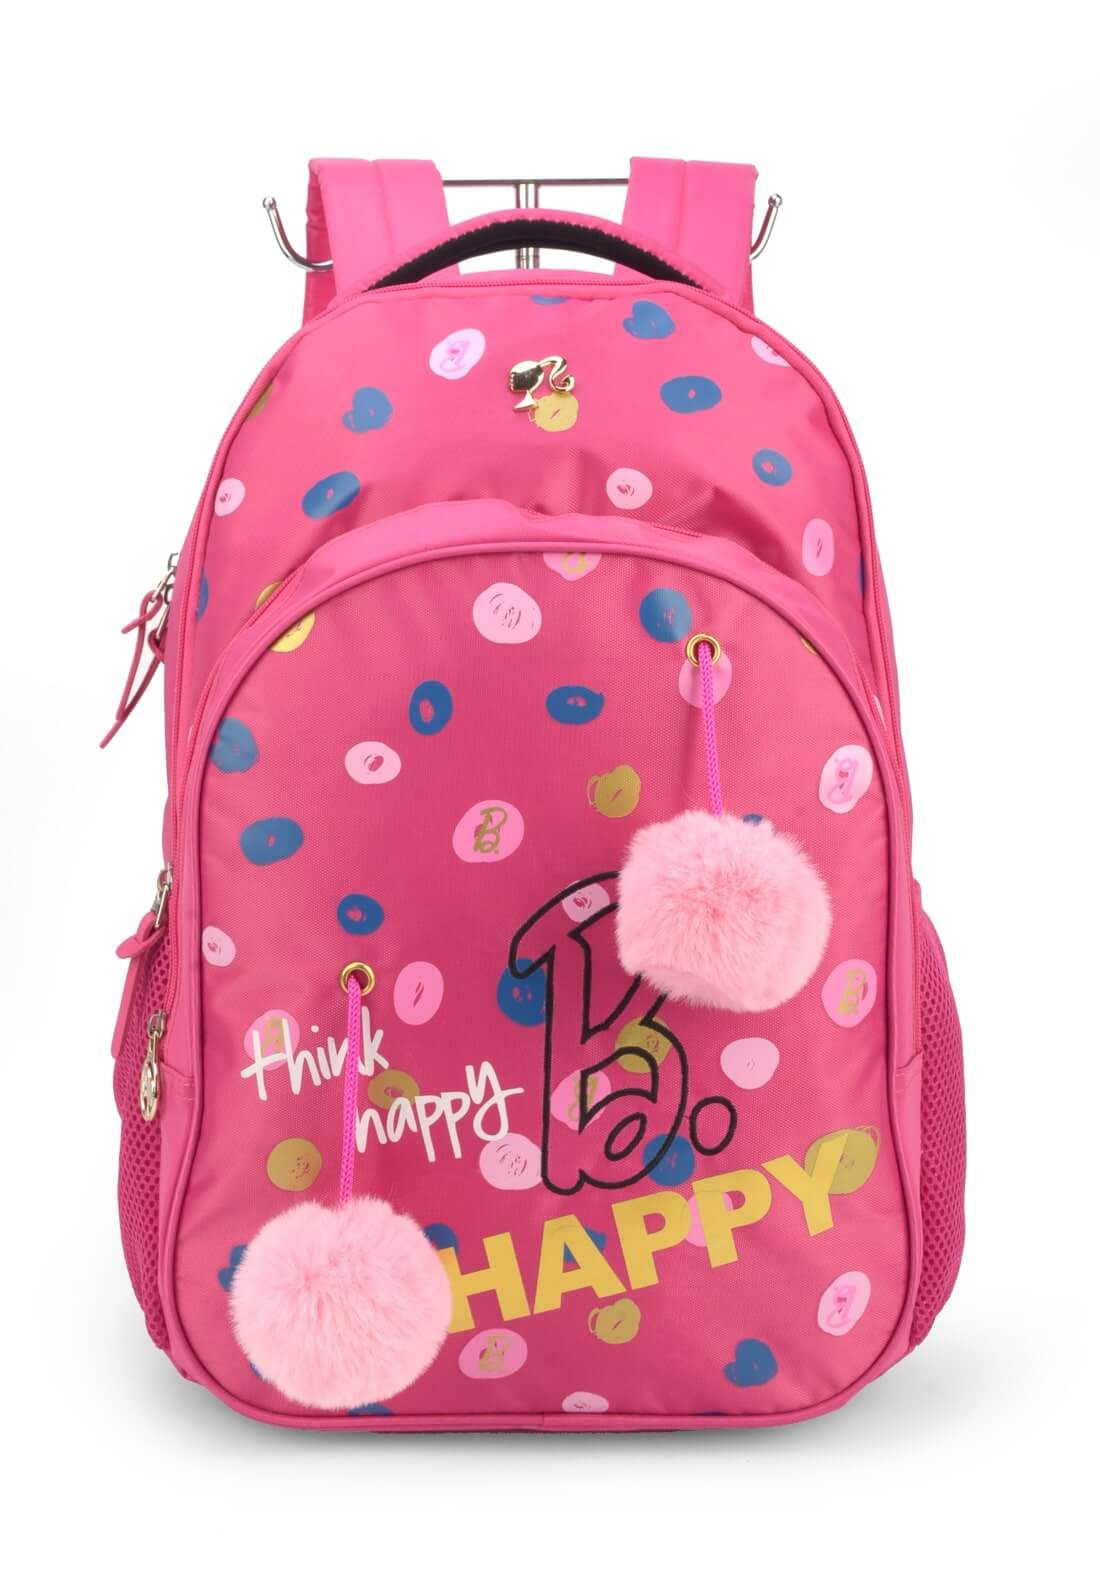 Mochila Costas Barbie Rosa Pink Pom Pom Notebook Original